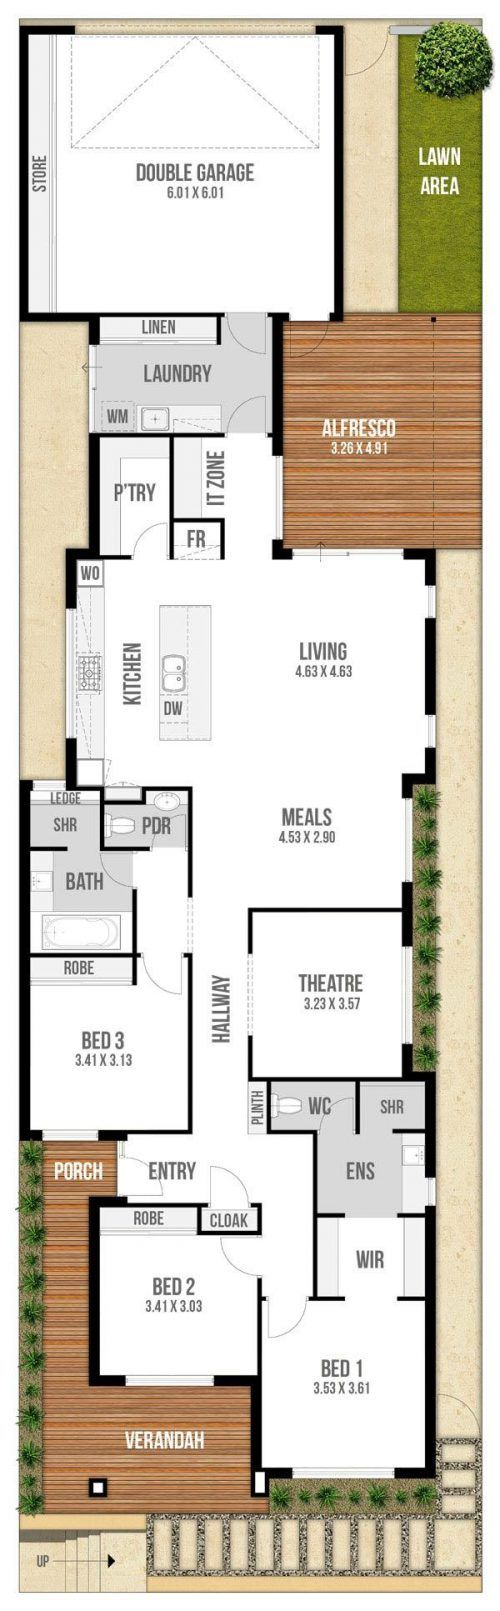 Floor Plan Friday Narrow Block With Garage Rear Lane Access Courtyard House Plans House Plans Narrow House Plans